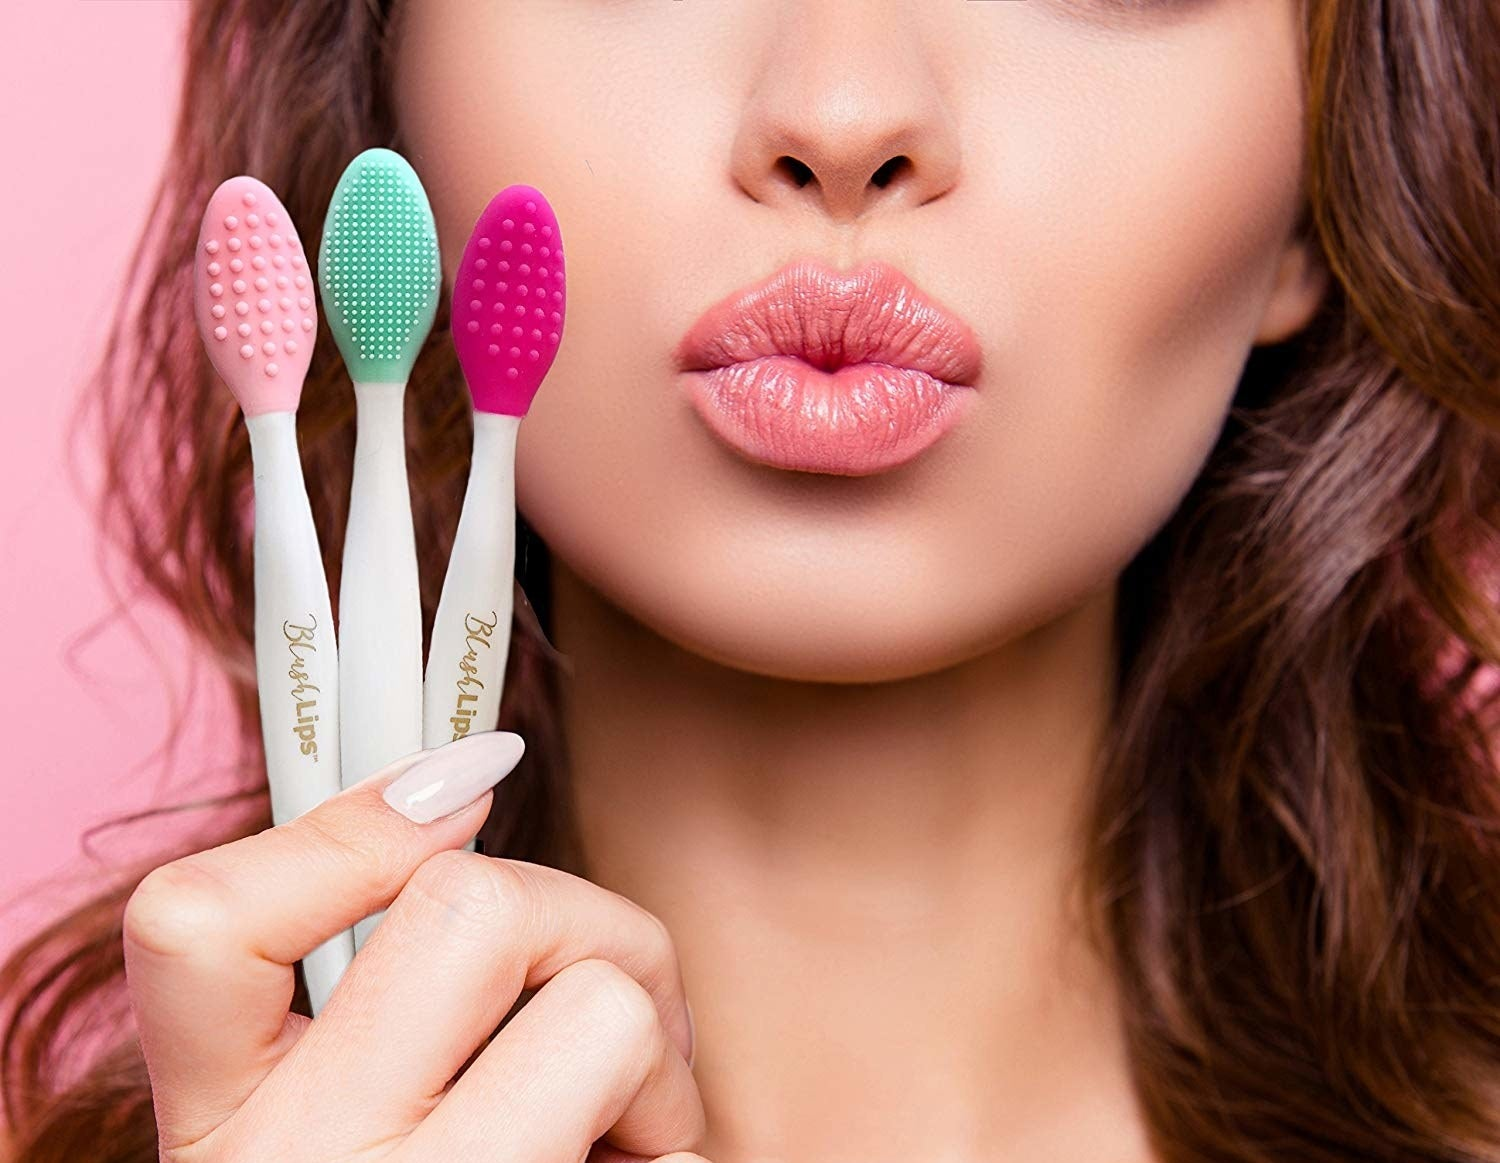 Person puckering lips while holding three toothbrush sized tools with silicone bumps for brushing lips